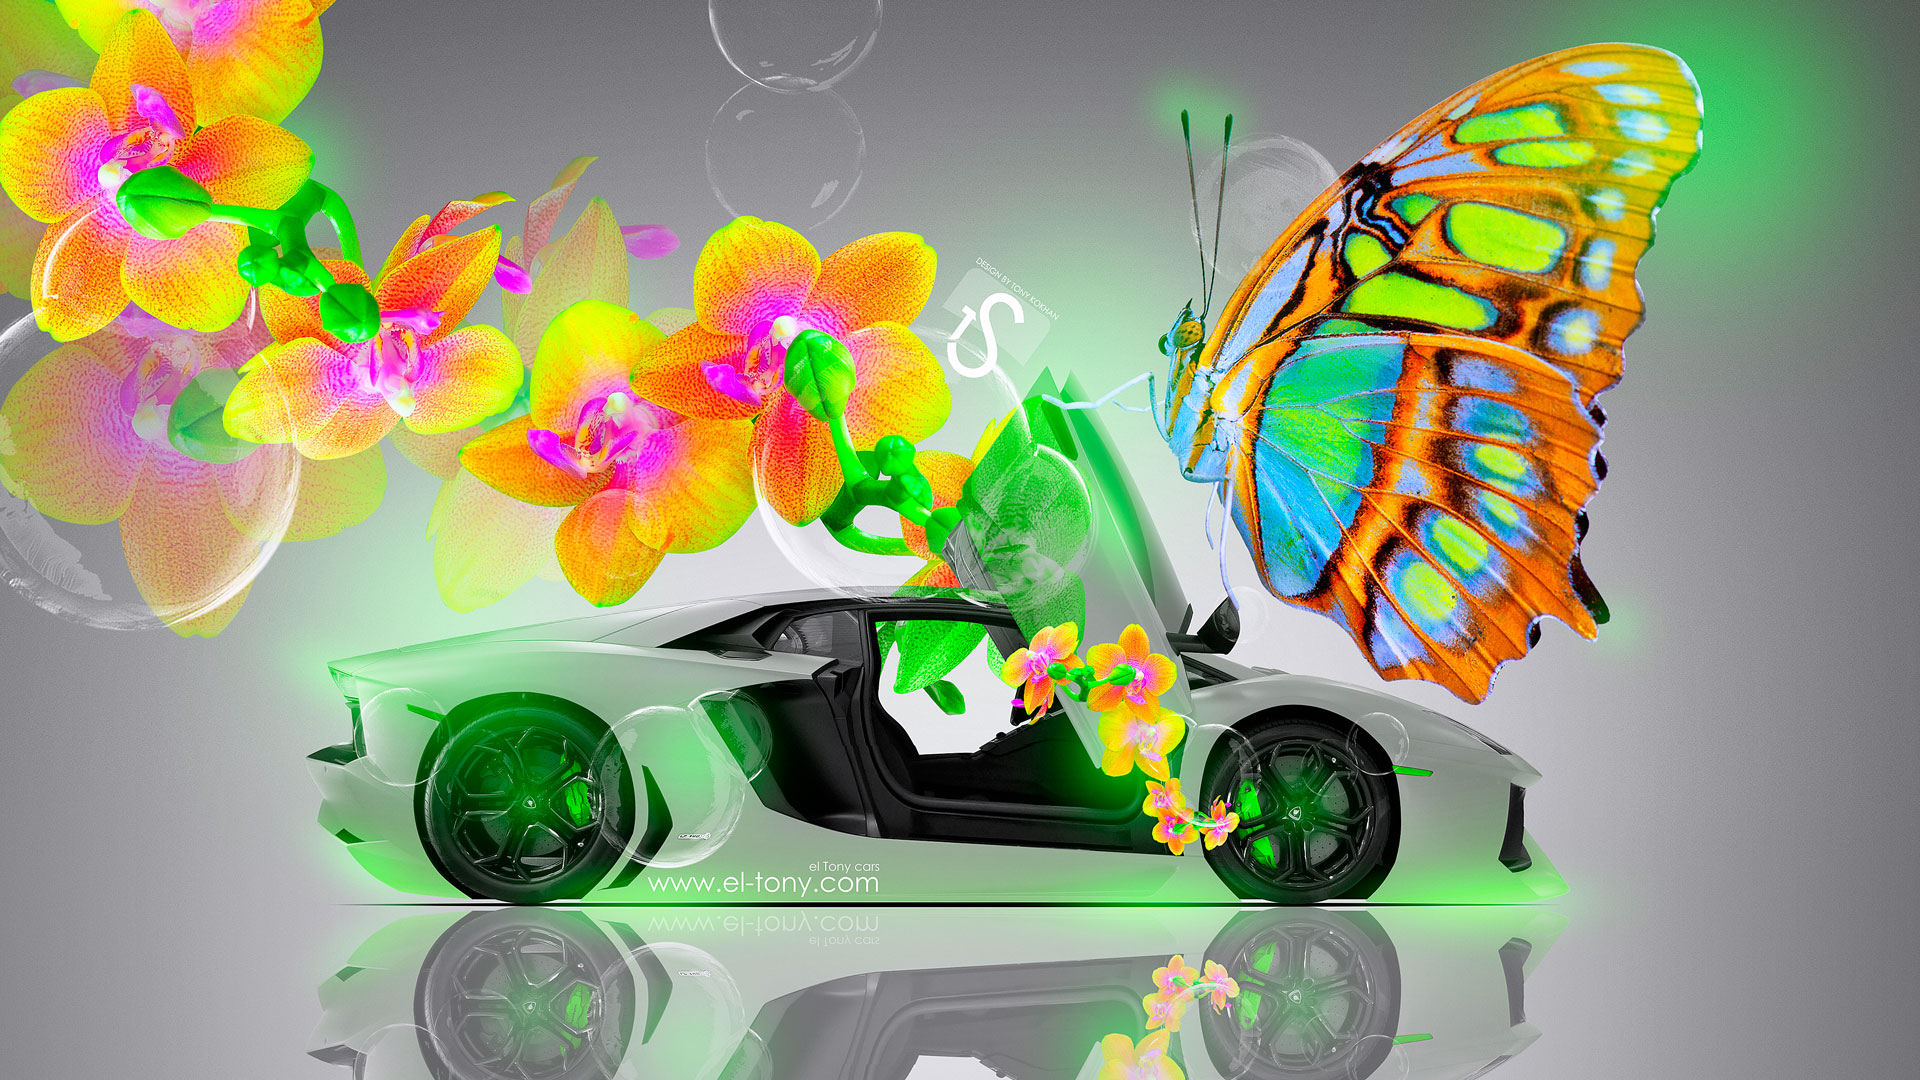 Superbe Lamborghini Aventador Open Doors Fantasy Flowers Butterfly Car